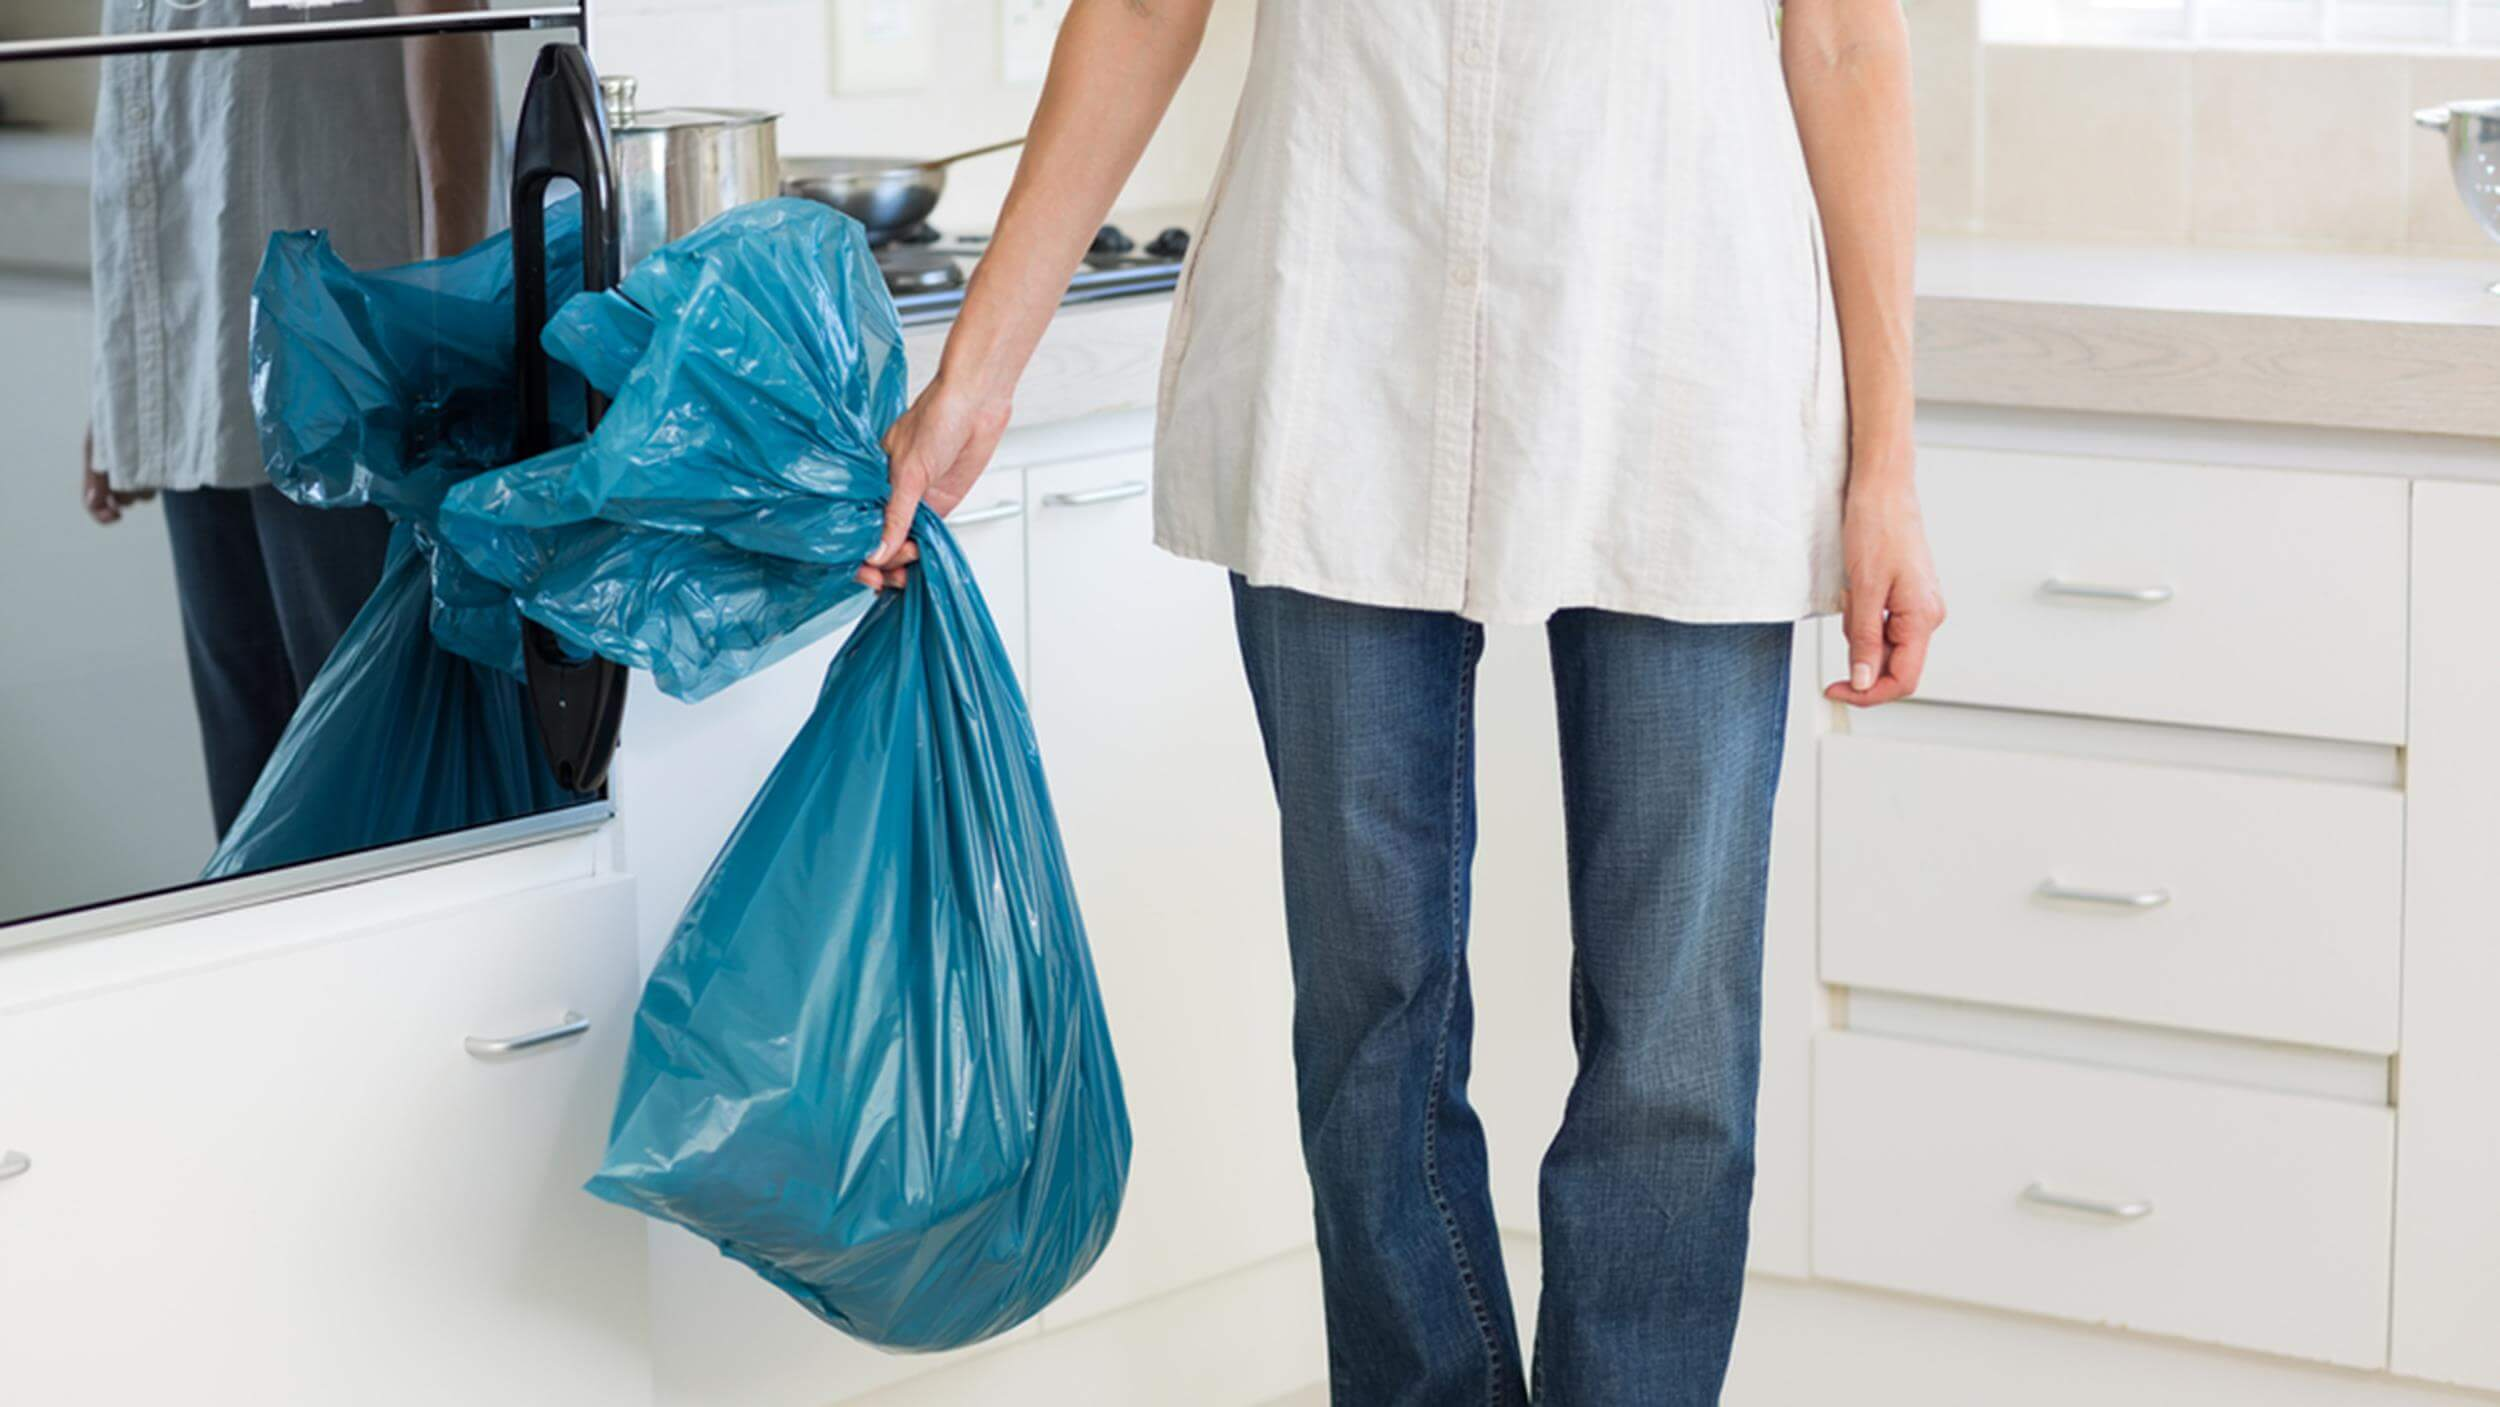 rid of unwanted trash in the house - House Cleaning